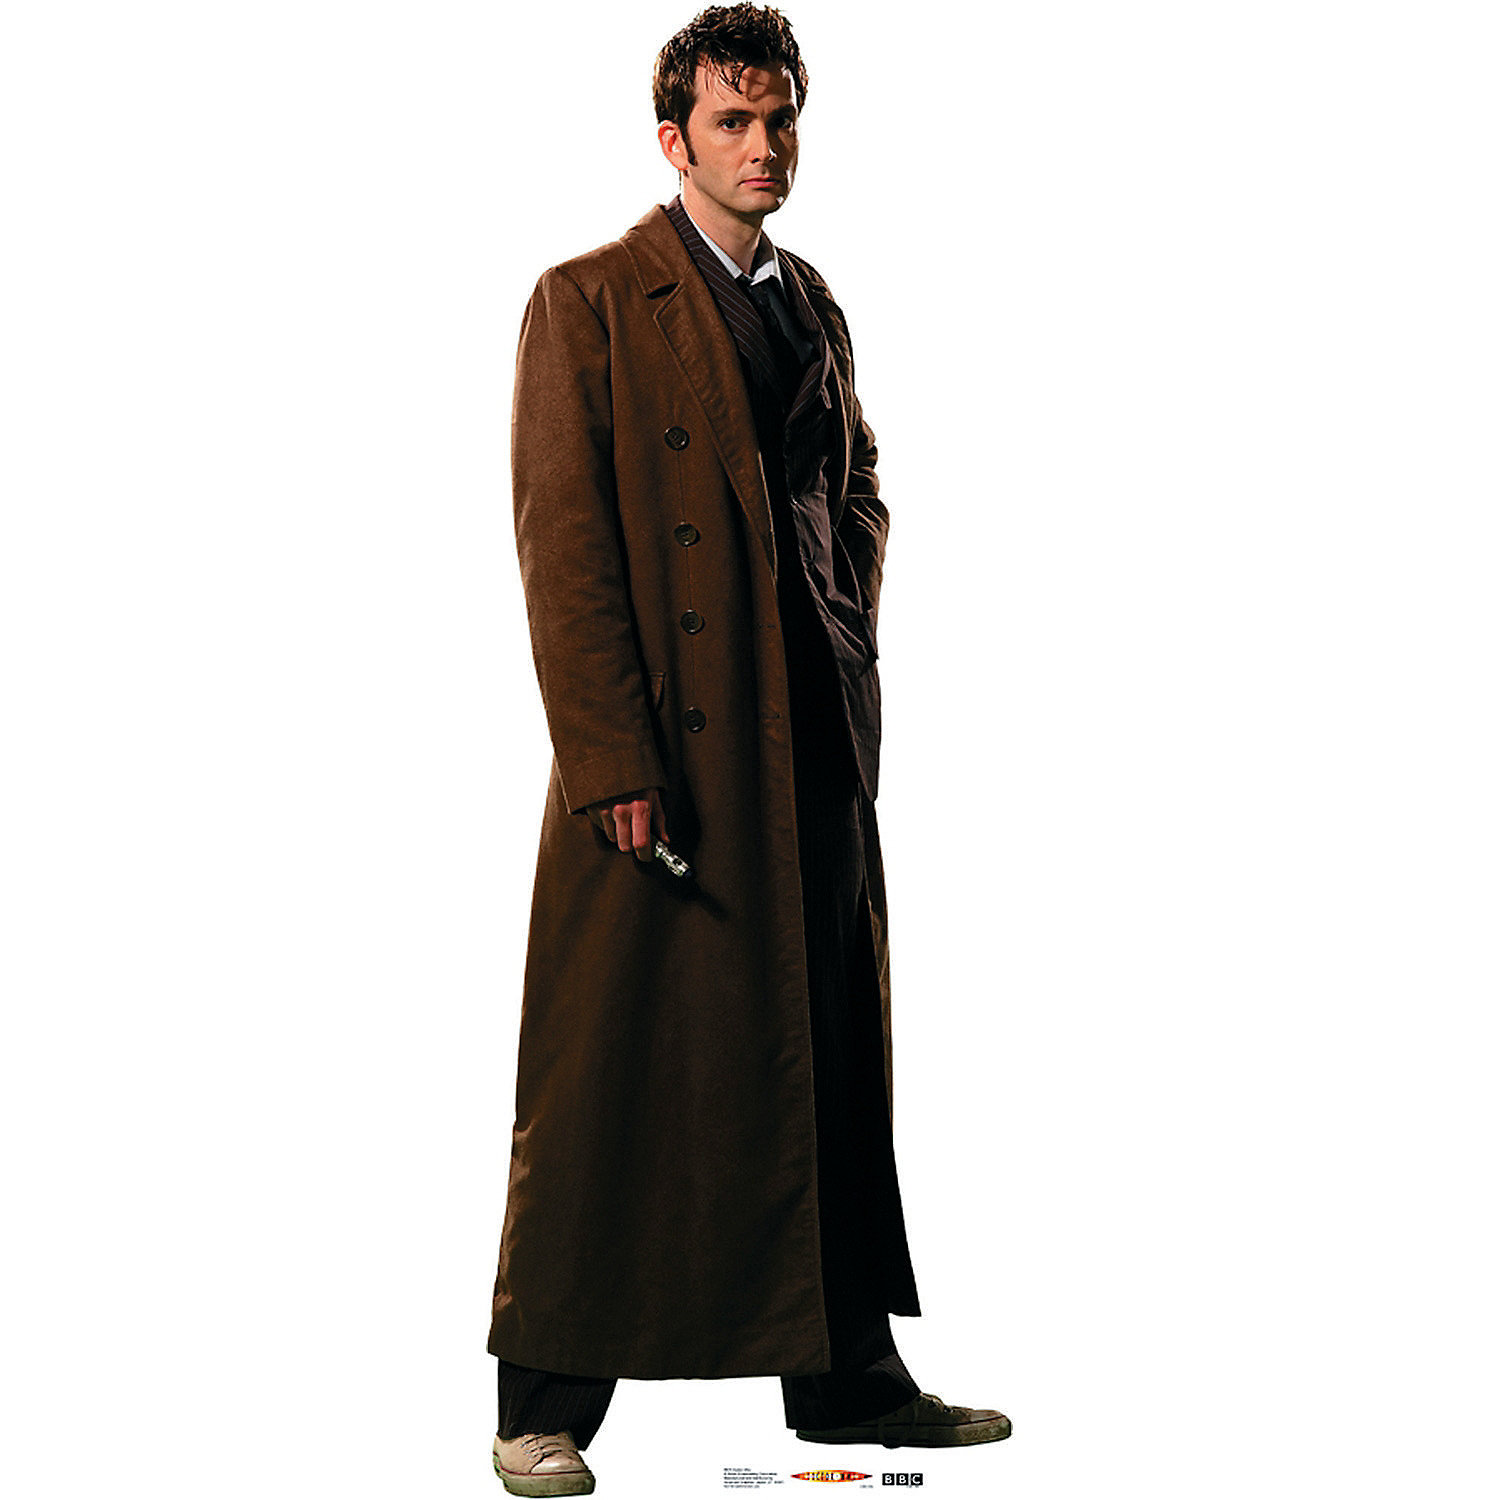 Dr who overcoat